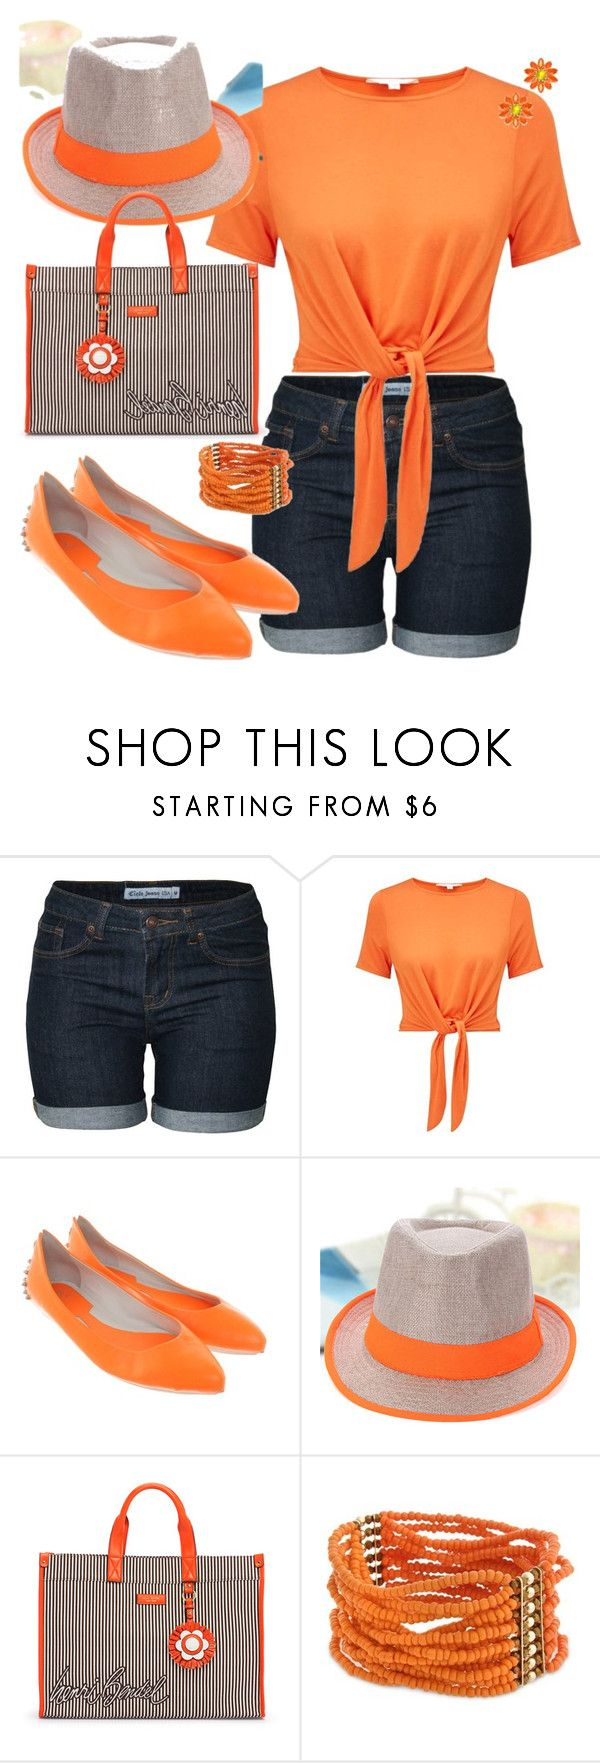 """orange"" by traceyenorton ❤ liked on Polyvore featuring Miss Selfridge, McQ by Alexander McQueen, Henri Bendel, Curvy Chic, Kate Spade, orangeoutfit and popsoforange"